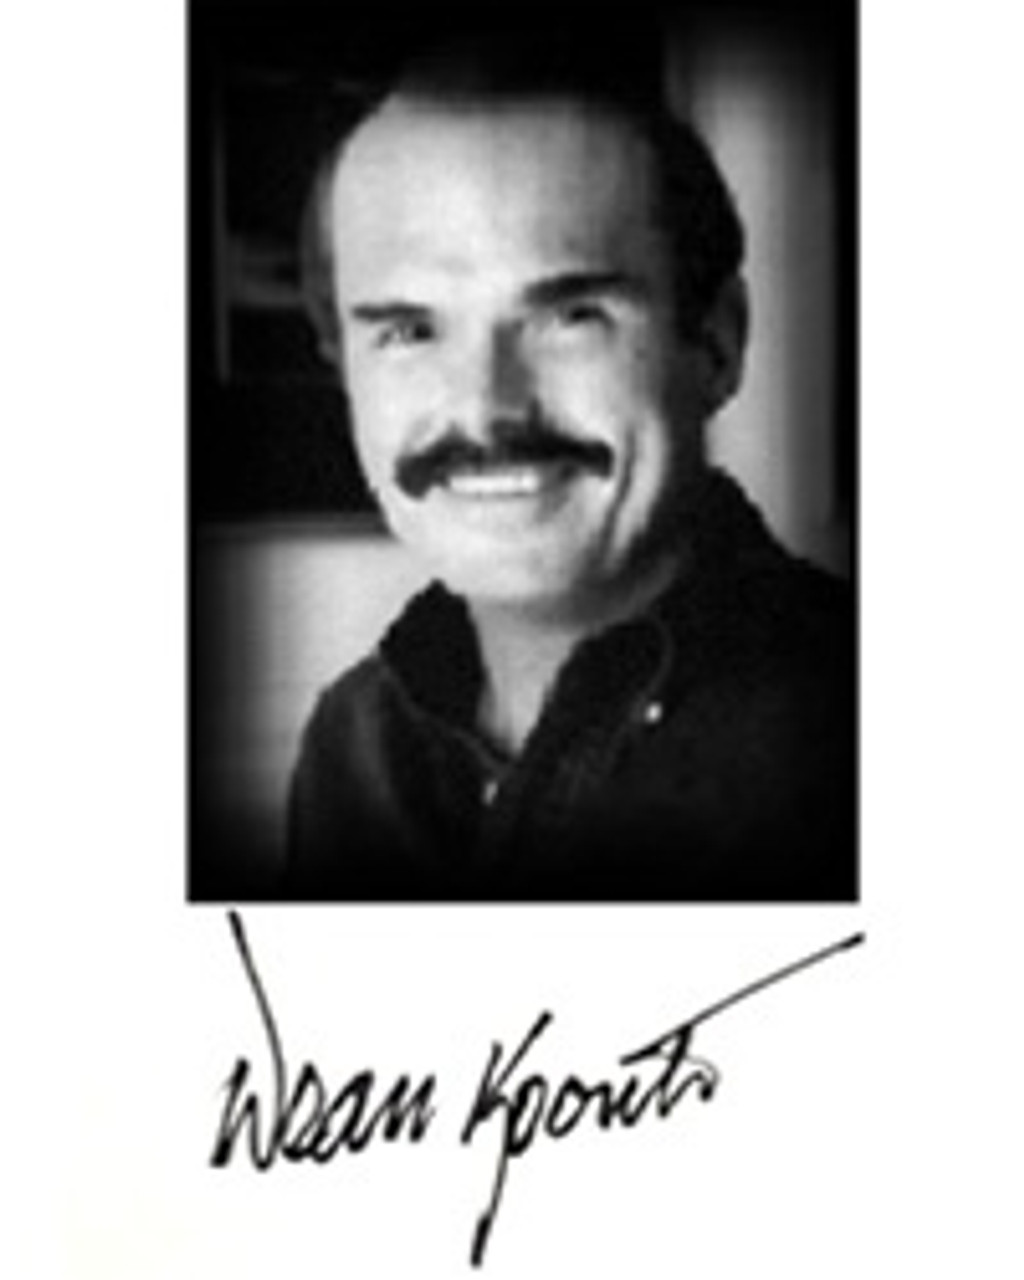 """Charnel House, Dean Koontz """"The Good Guy"""" Signed Limited Edition #93/350 (Very Fine)"""